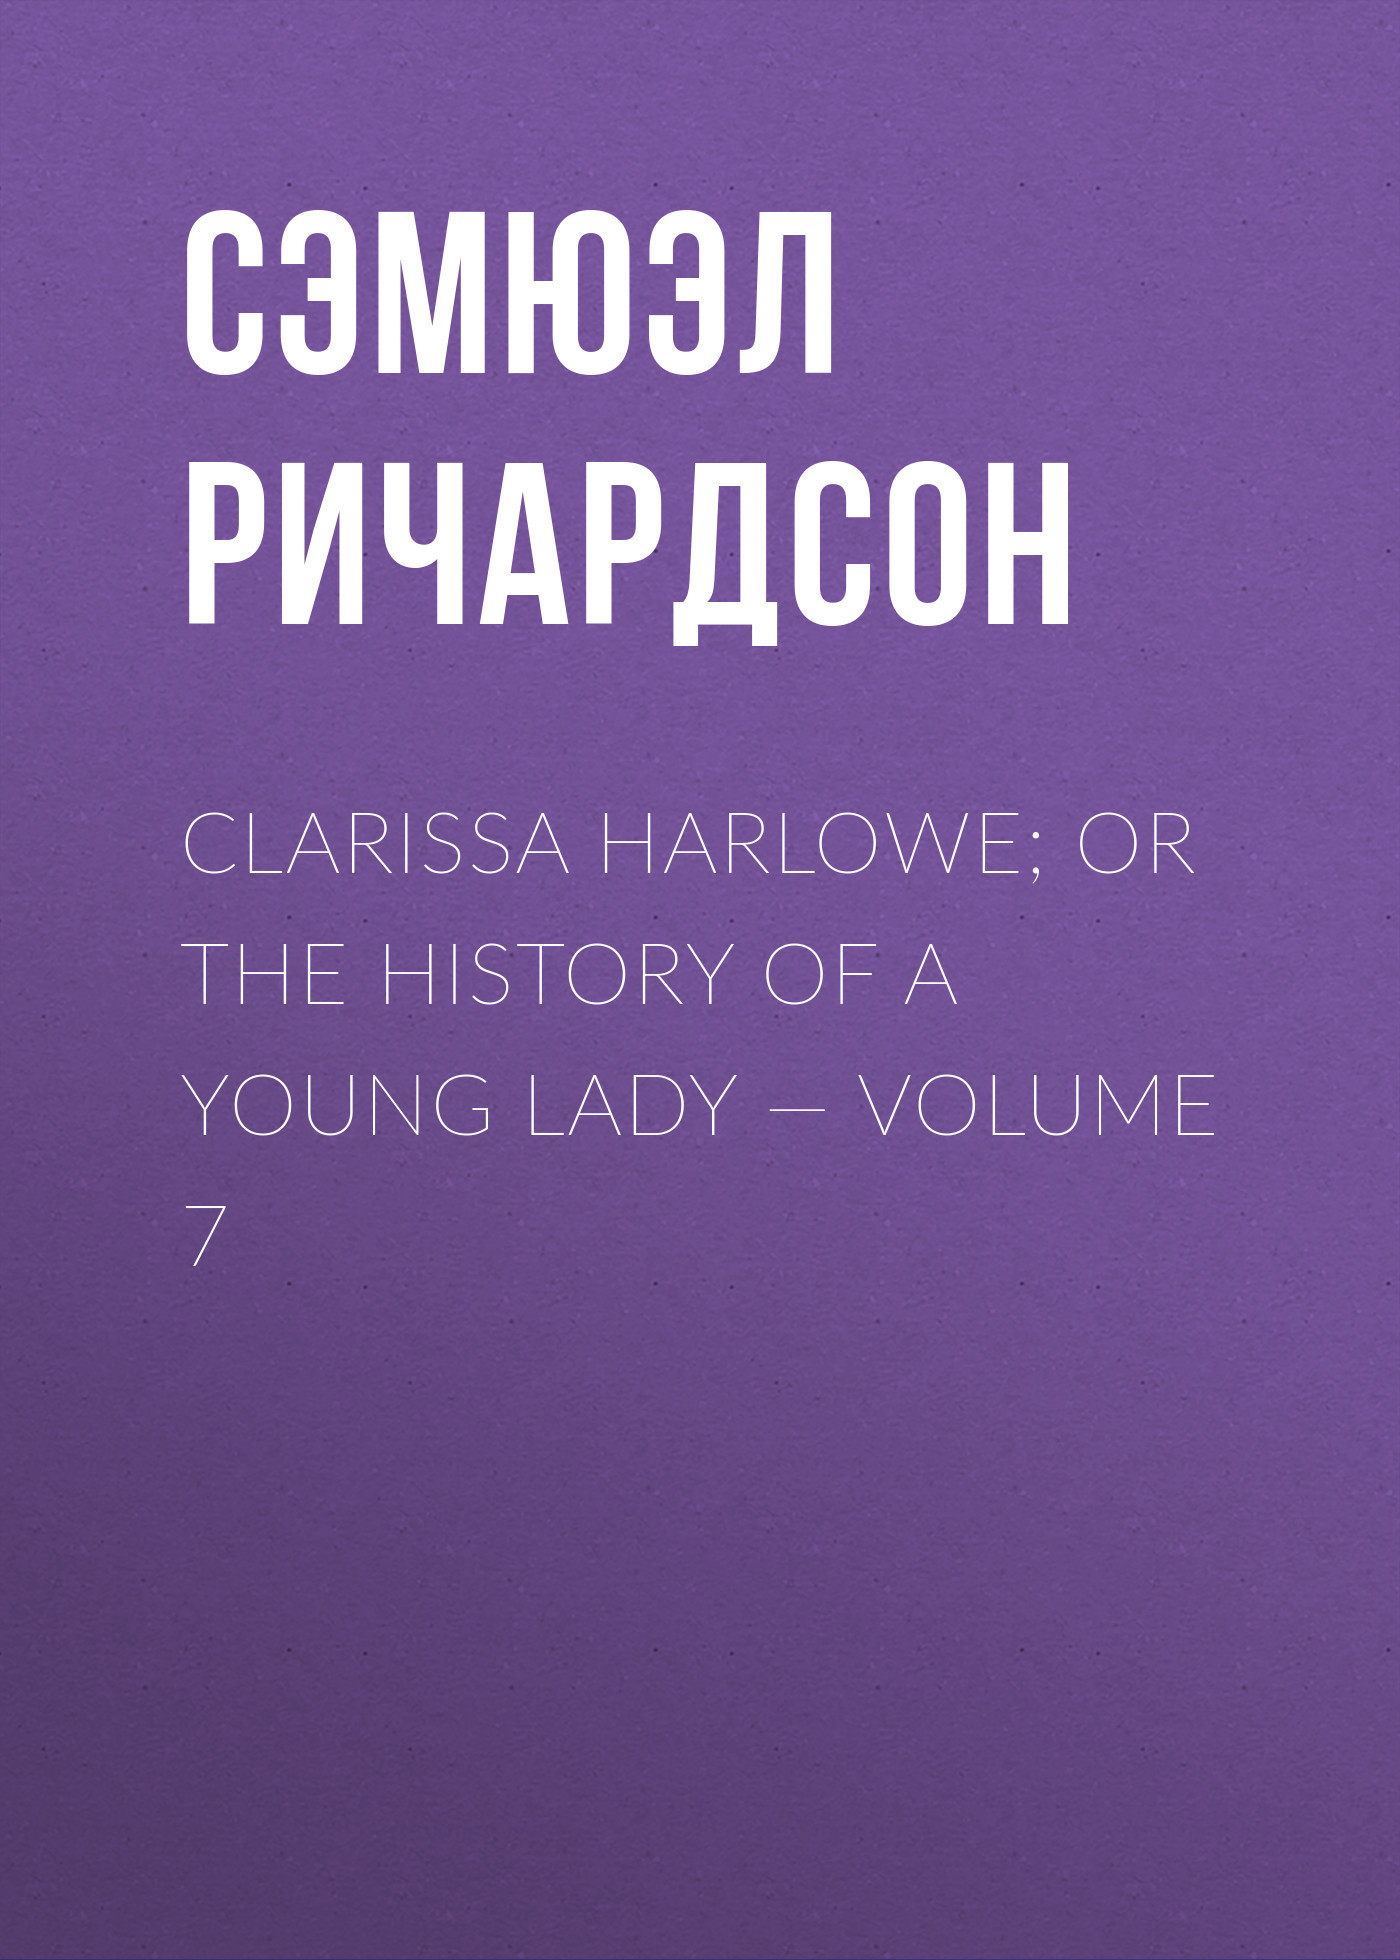 Clarissa Harlowe; or the history of a young lady — Volume 7